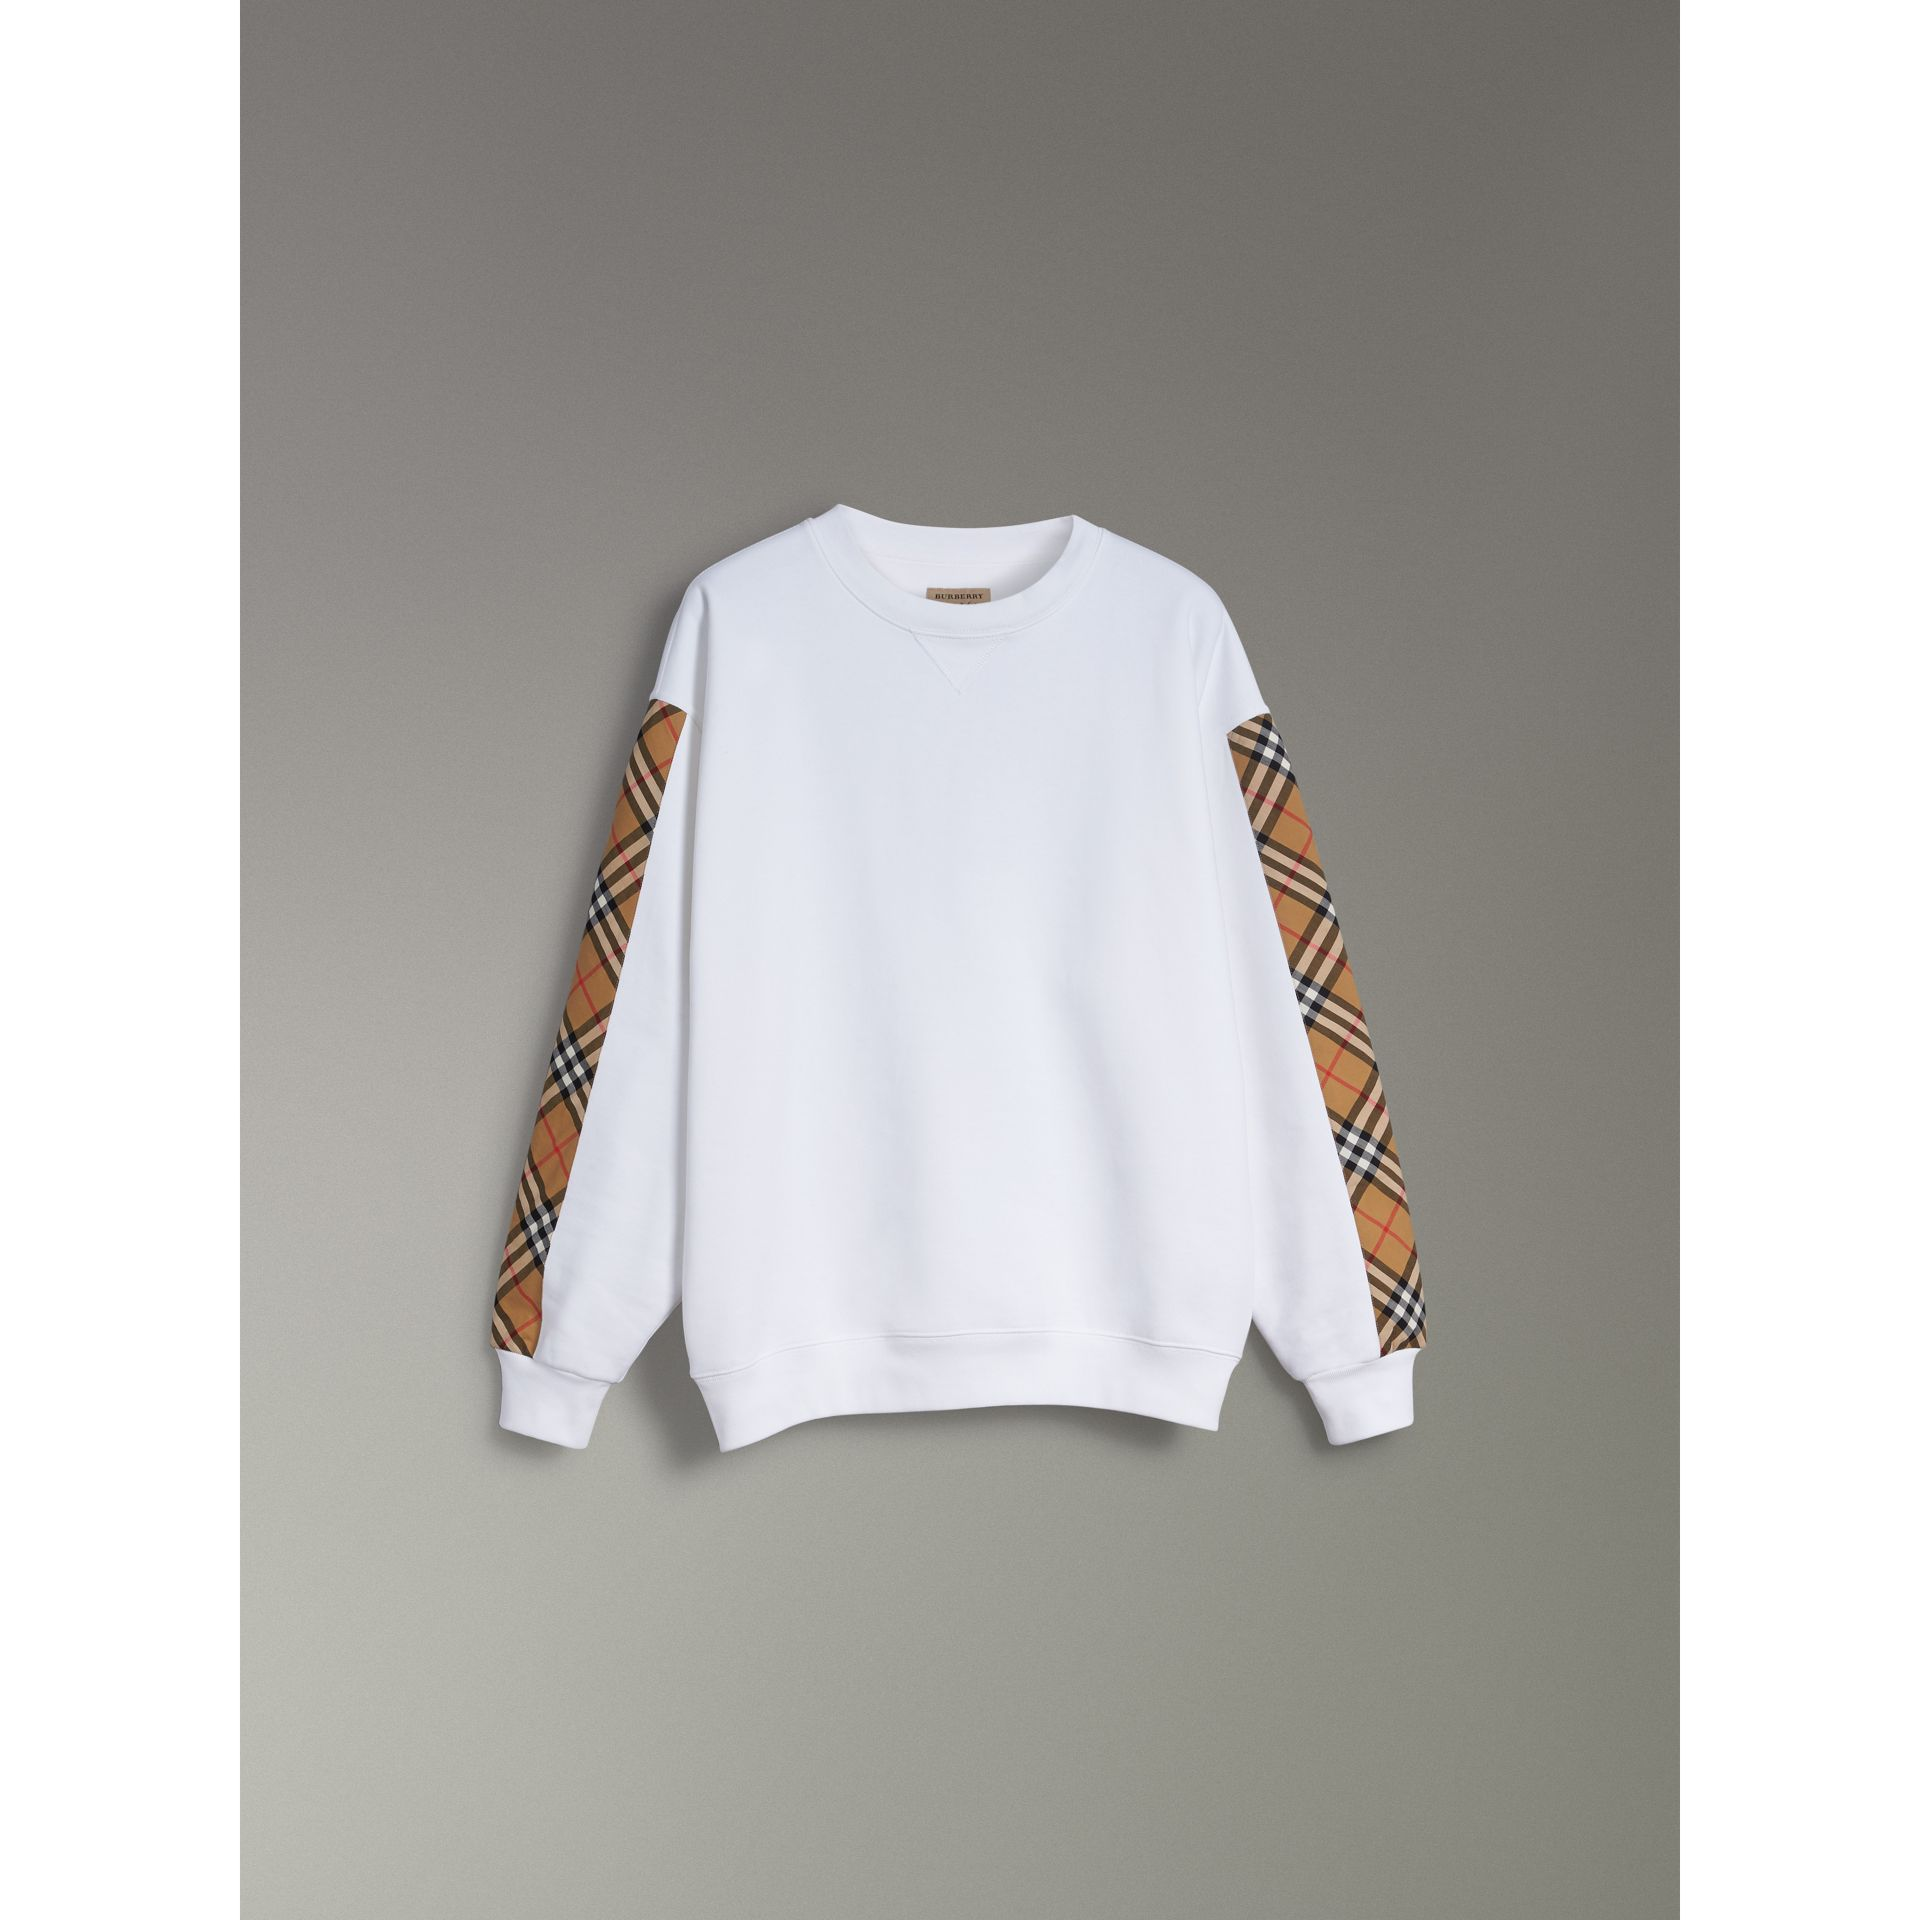 Vintage Check Detail Cotton Blend Sweatshirt in White - Women | Burberry Singapore - gallery image 3